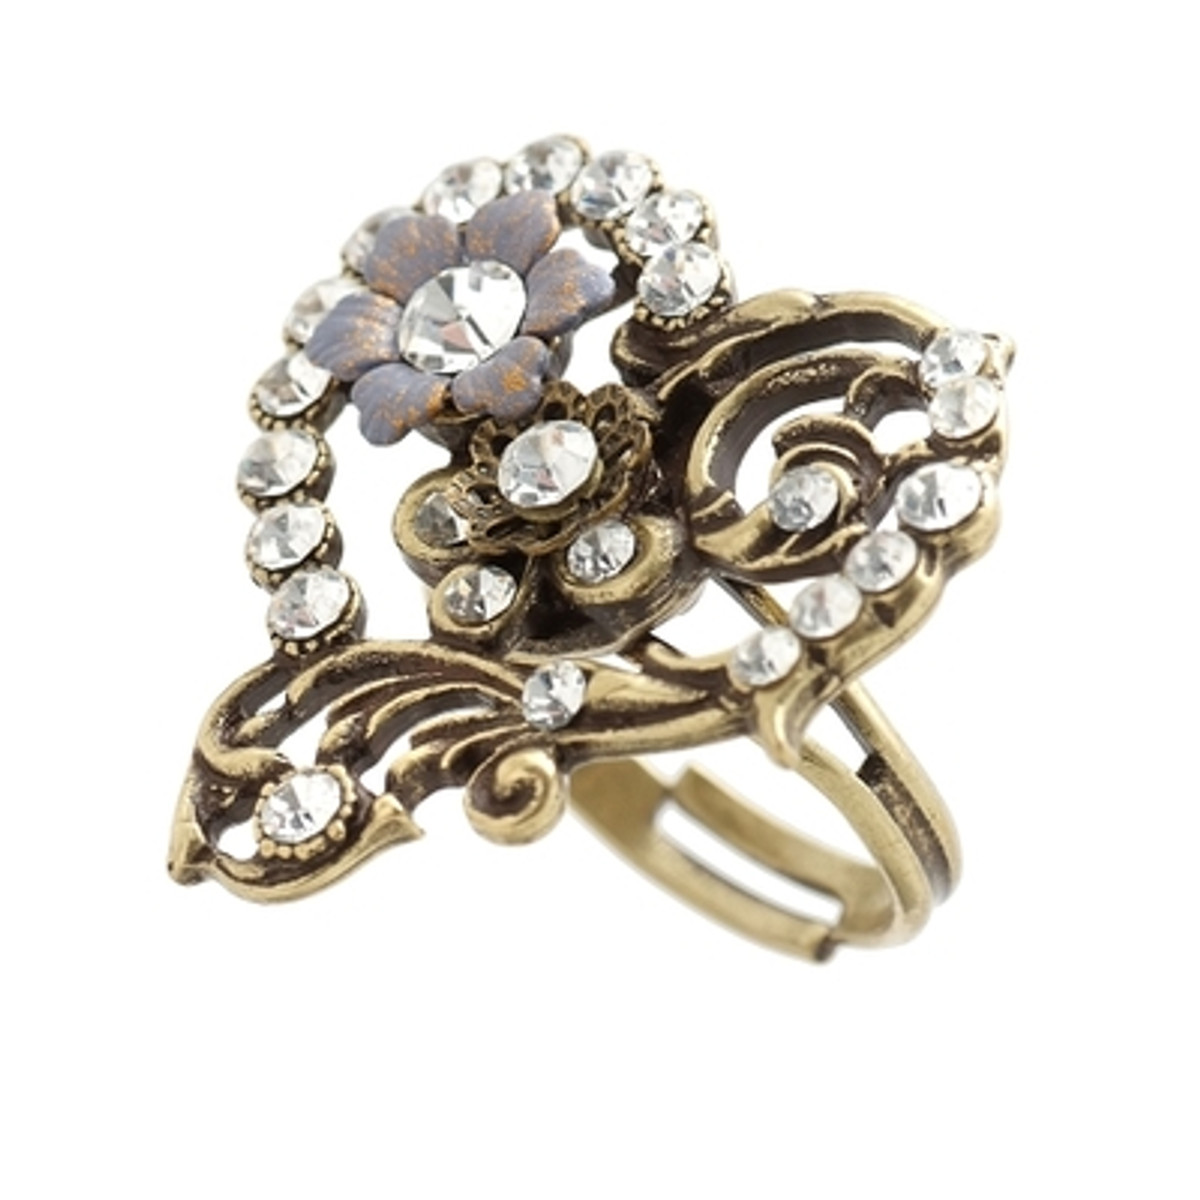 A Unique Ring From The Michal Negrin Classic Collection - One Left